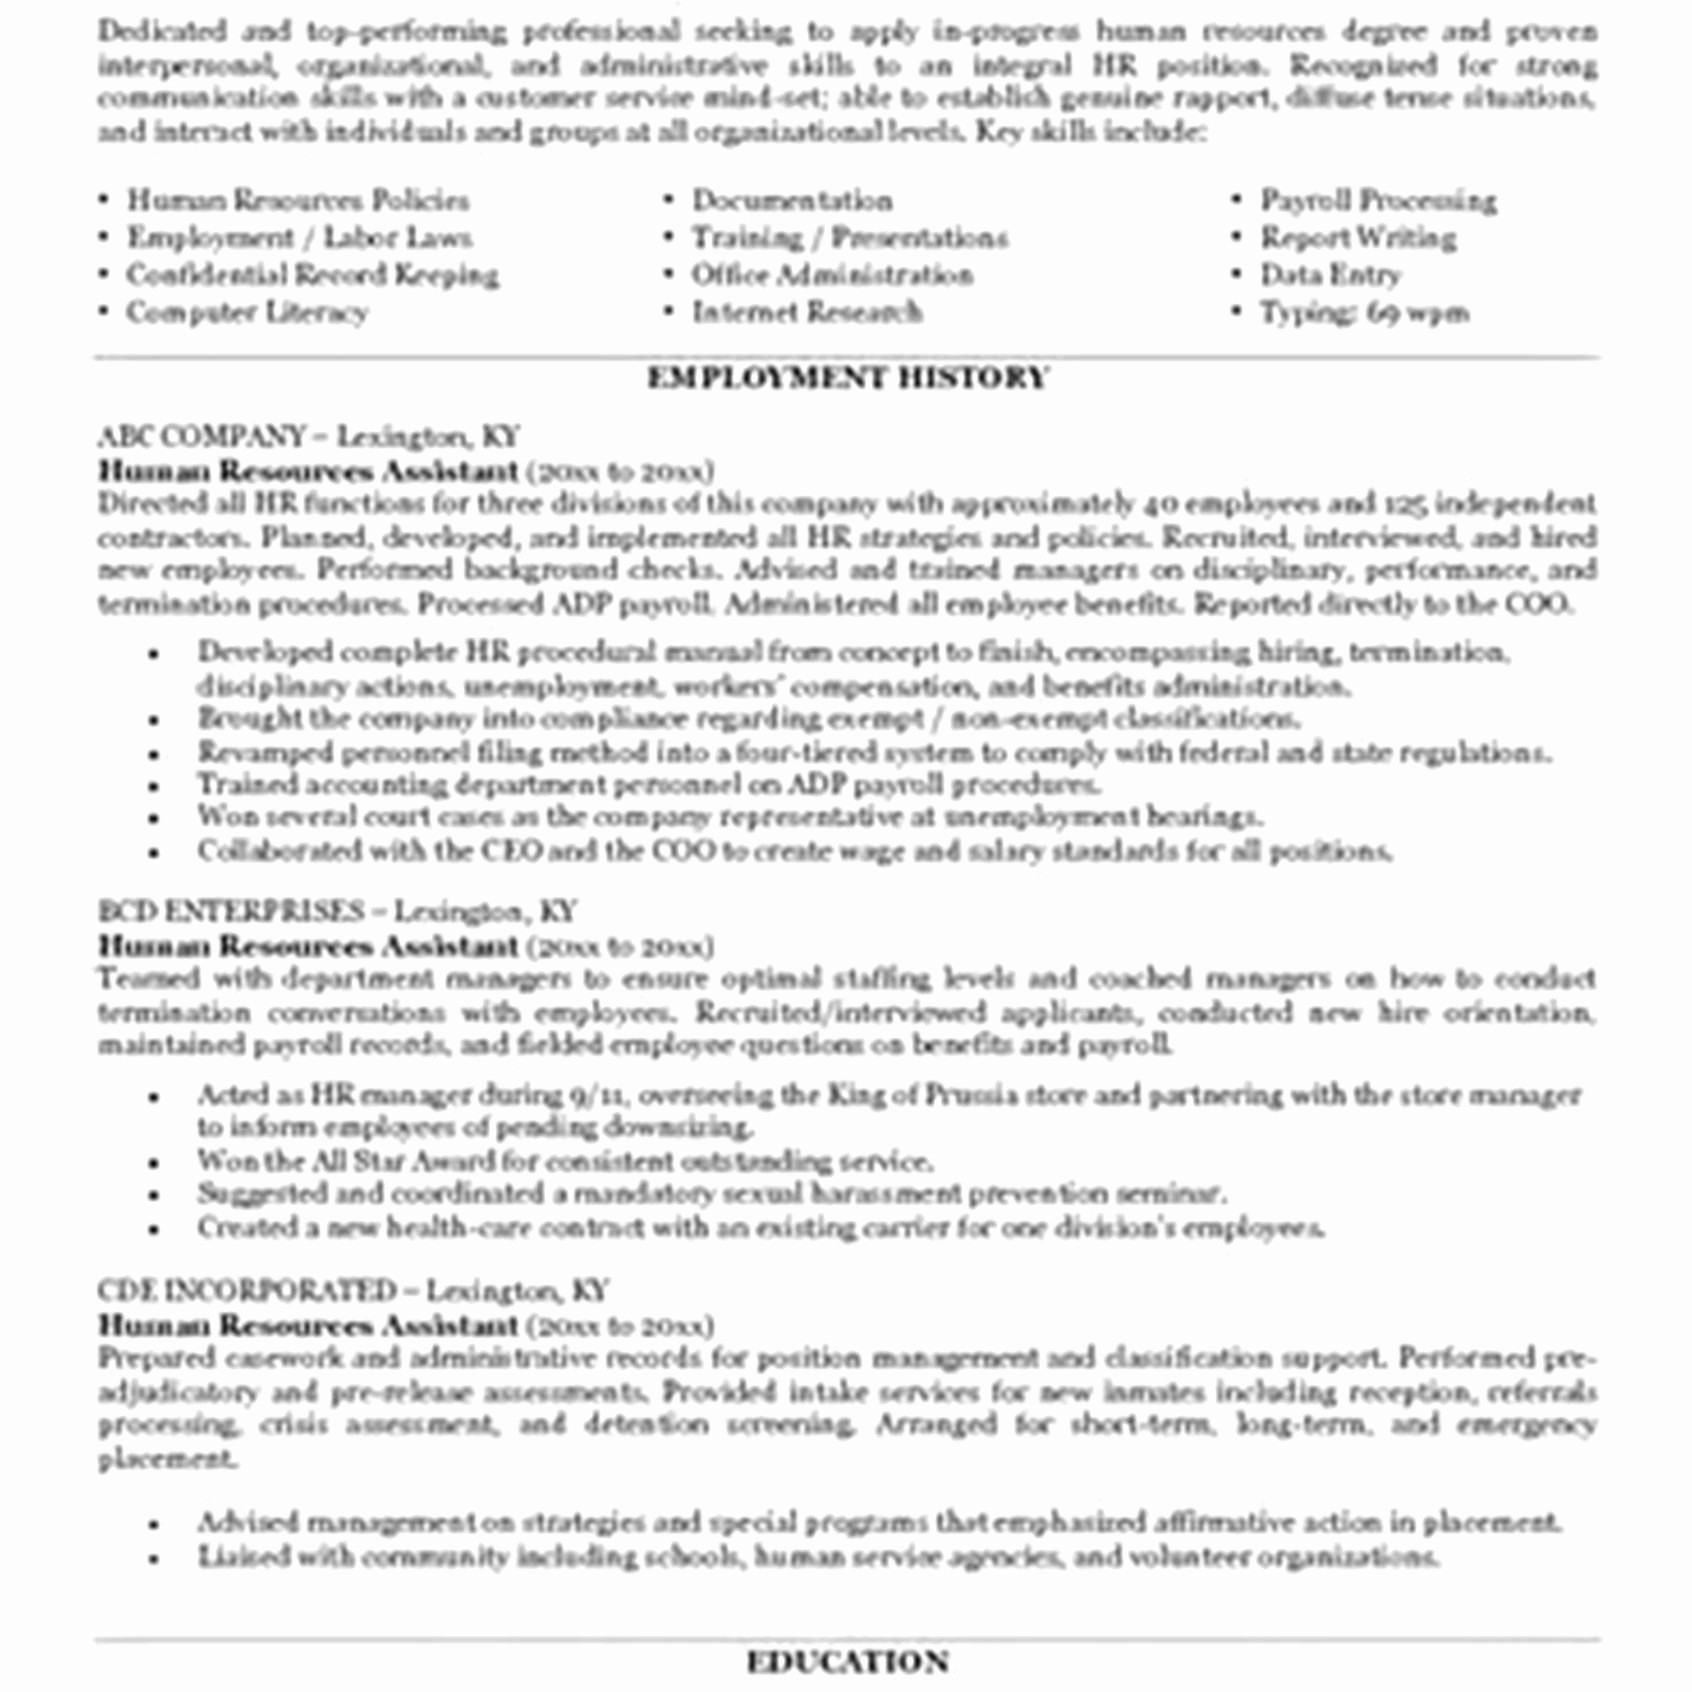 Human Resources Manager Resume Template - Human Resource Manager Resume New Sample Human Resources Manager